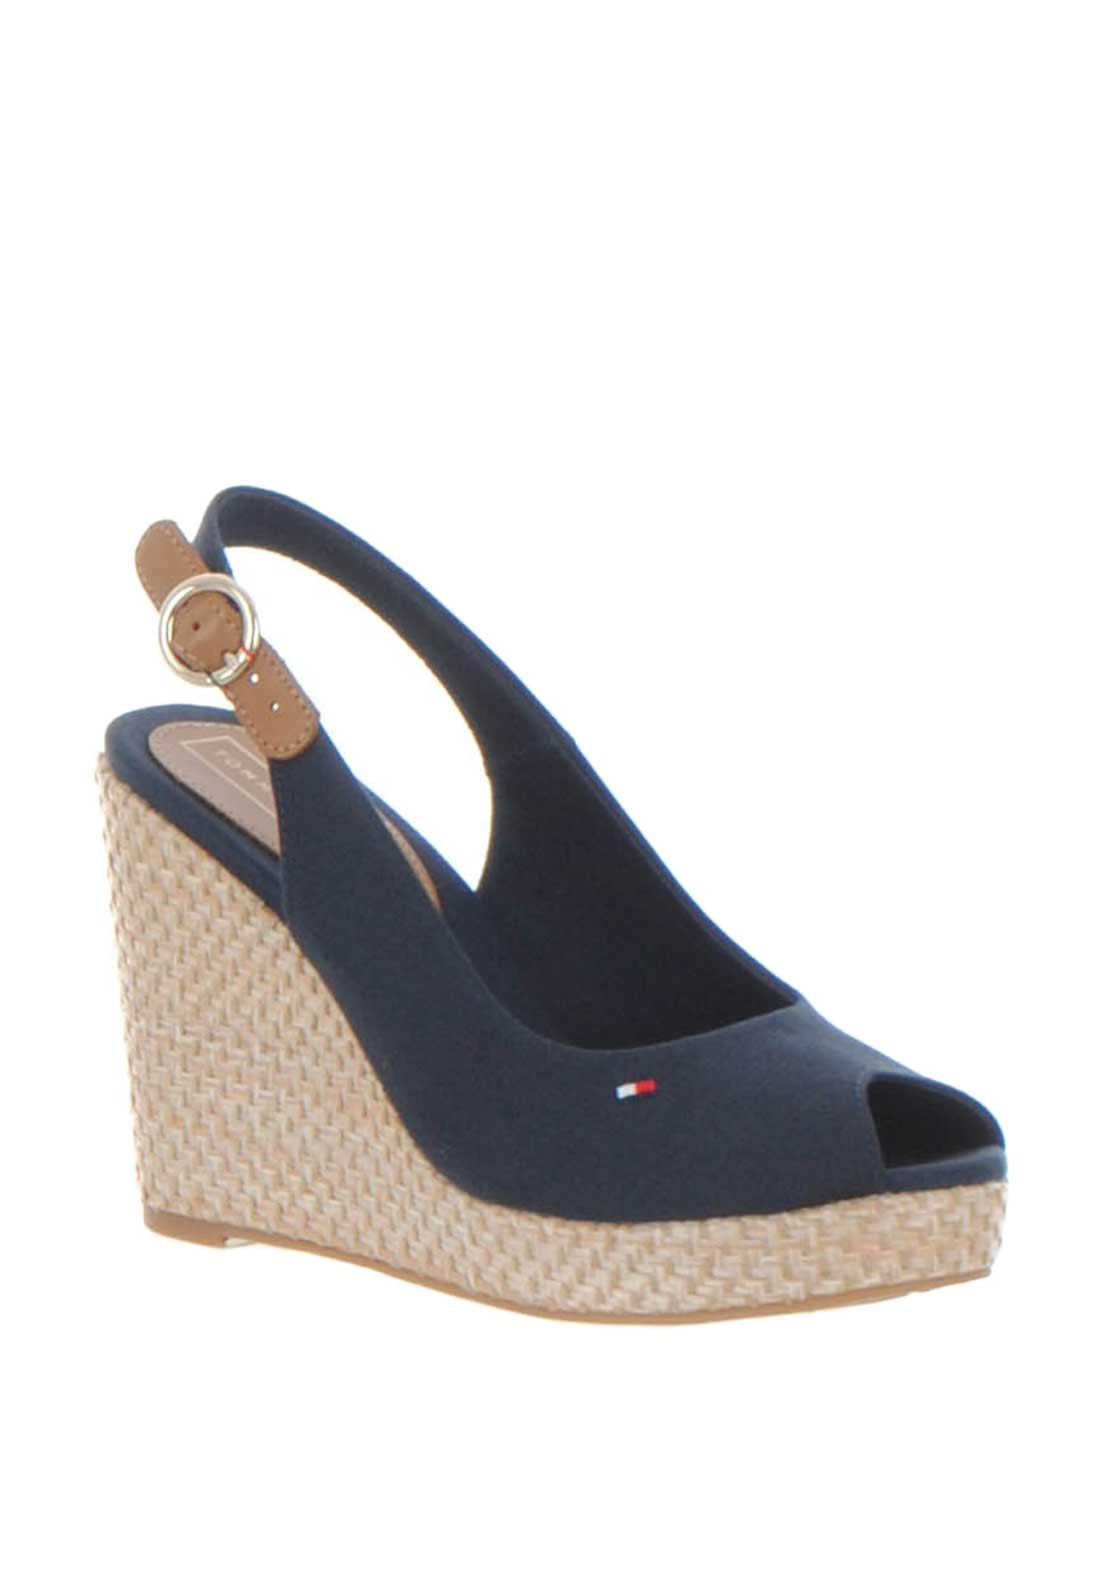 Tommy Hilfiger Womens Slingback High Wedge Sandals Navy